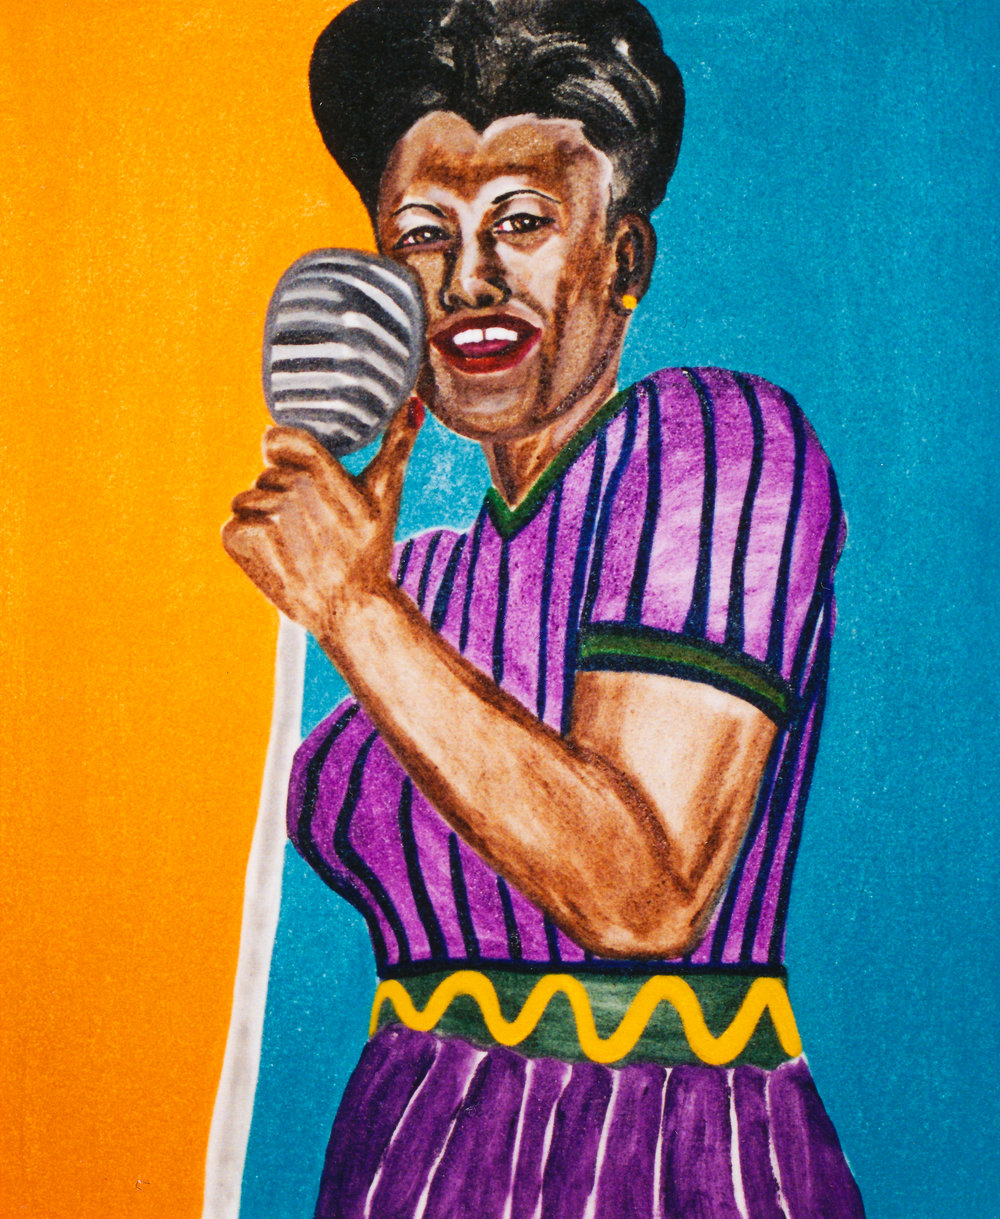 Ella Fitzgerald at the Musical Instrument Museum, Phoenix - A brief slide show about Frederick J. Brown's series of musicians highlighting his portrait of Ella Fitzgerald introduced the Musical Instrument Museum's Musical Icon program honoring Black History Month in February.